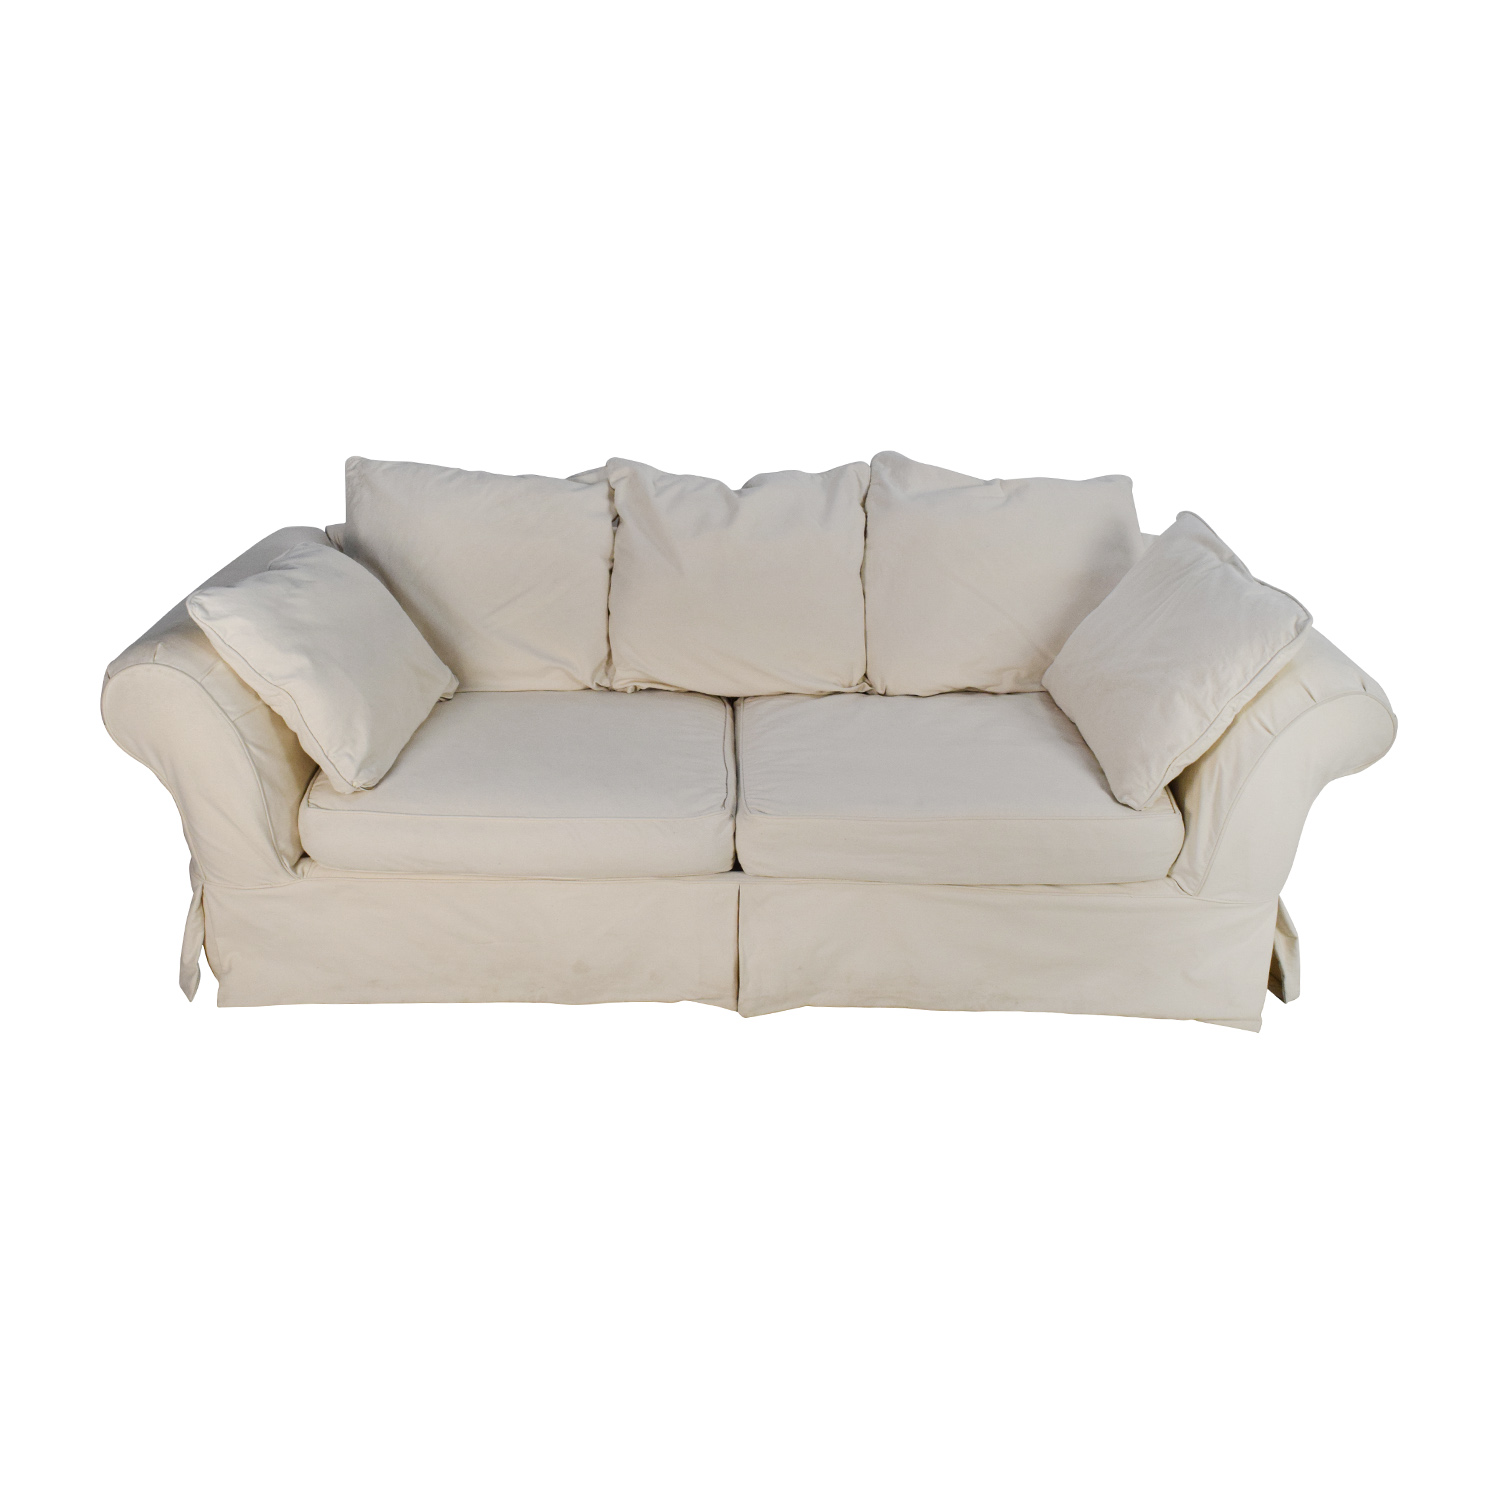 shop Jennifer Convertibles Linda Slipcovered Sofa Jennifer Convertibles Classic Sofas